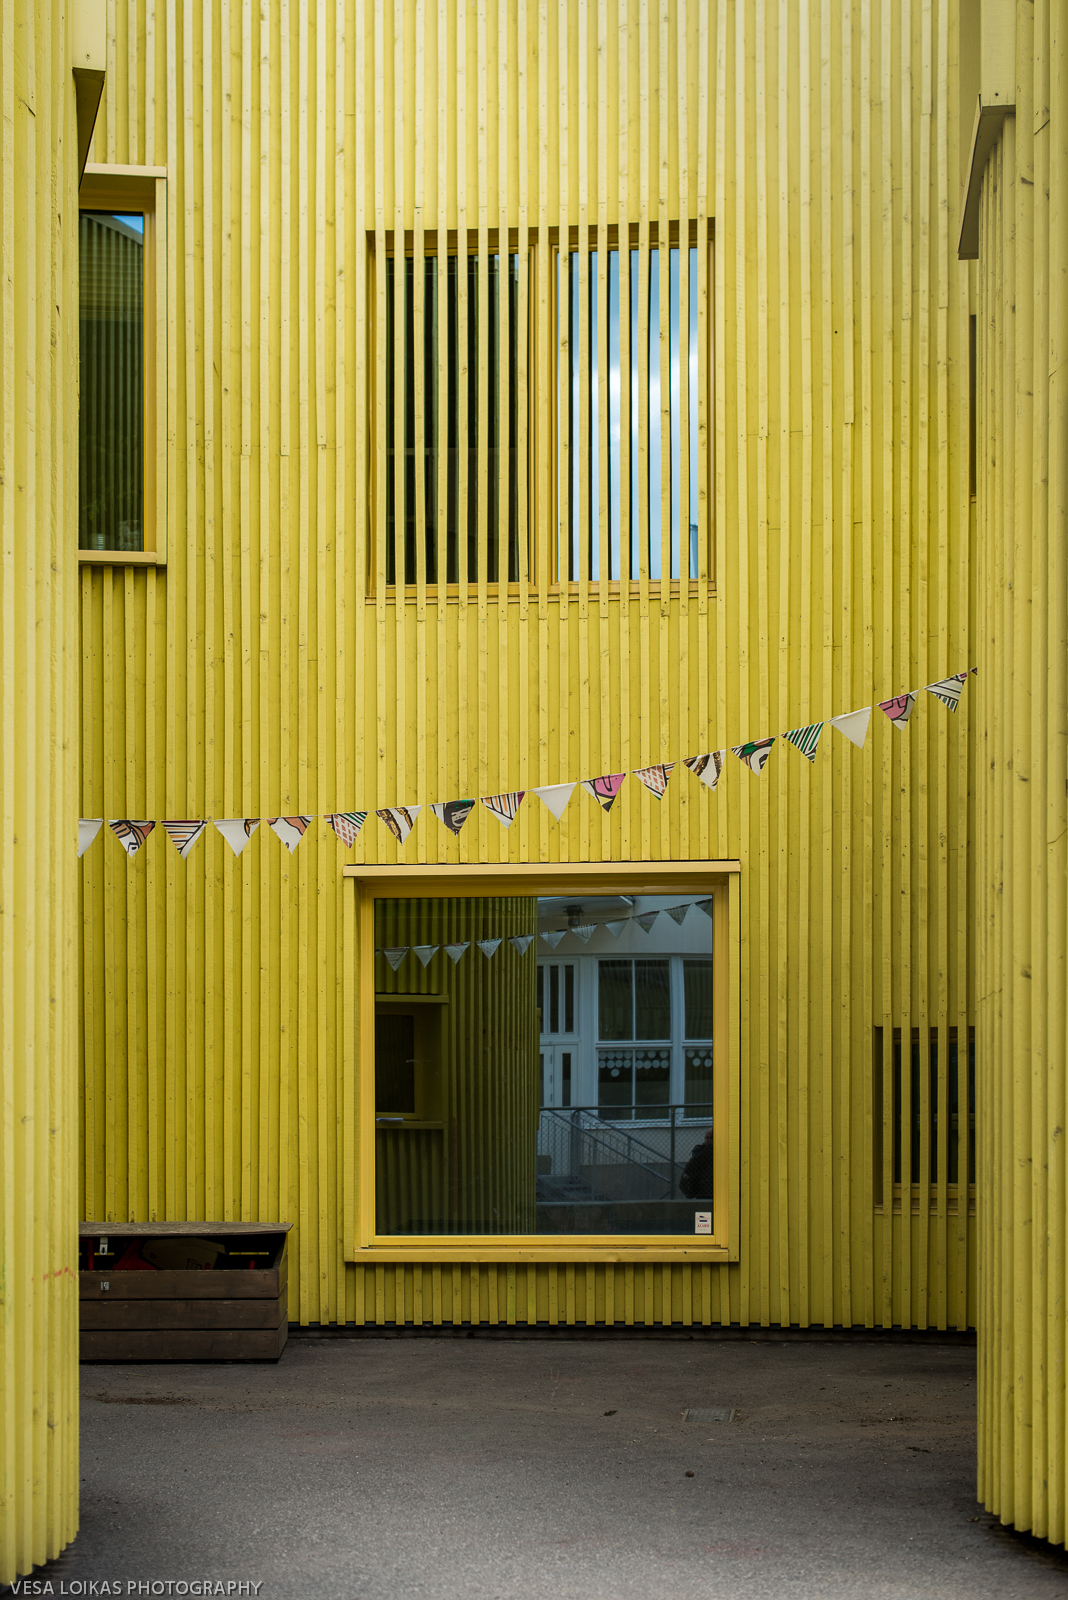 Paletten Nursery School - The facade panels are created with yellow sawn wood following the curved plan of this kindergarten located at the end of an old industrial area of Telefonplan south-west of central Stockholm.